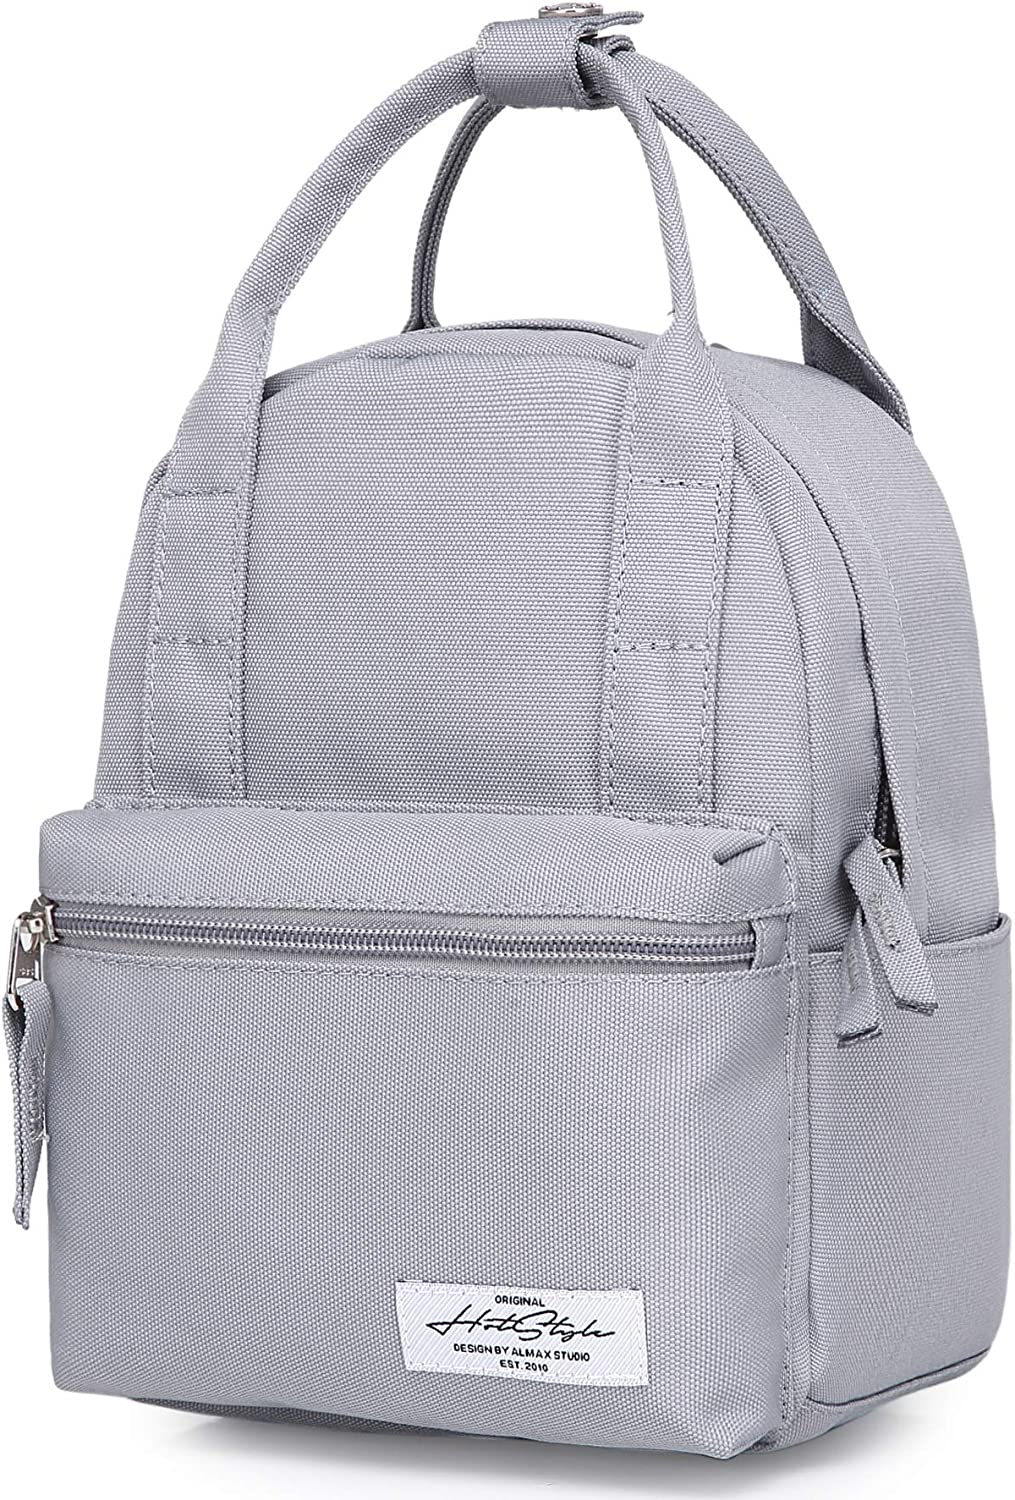 HotStyle 8811s Extra Mini Backpack Purse Little Daypack Cute for Teen Girls, 4 Liters